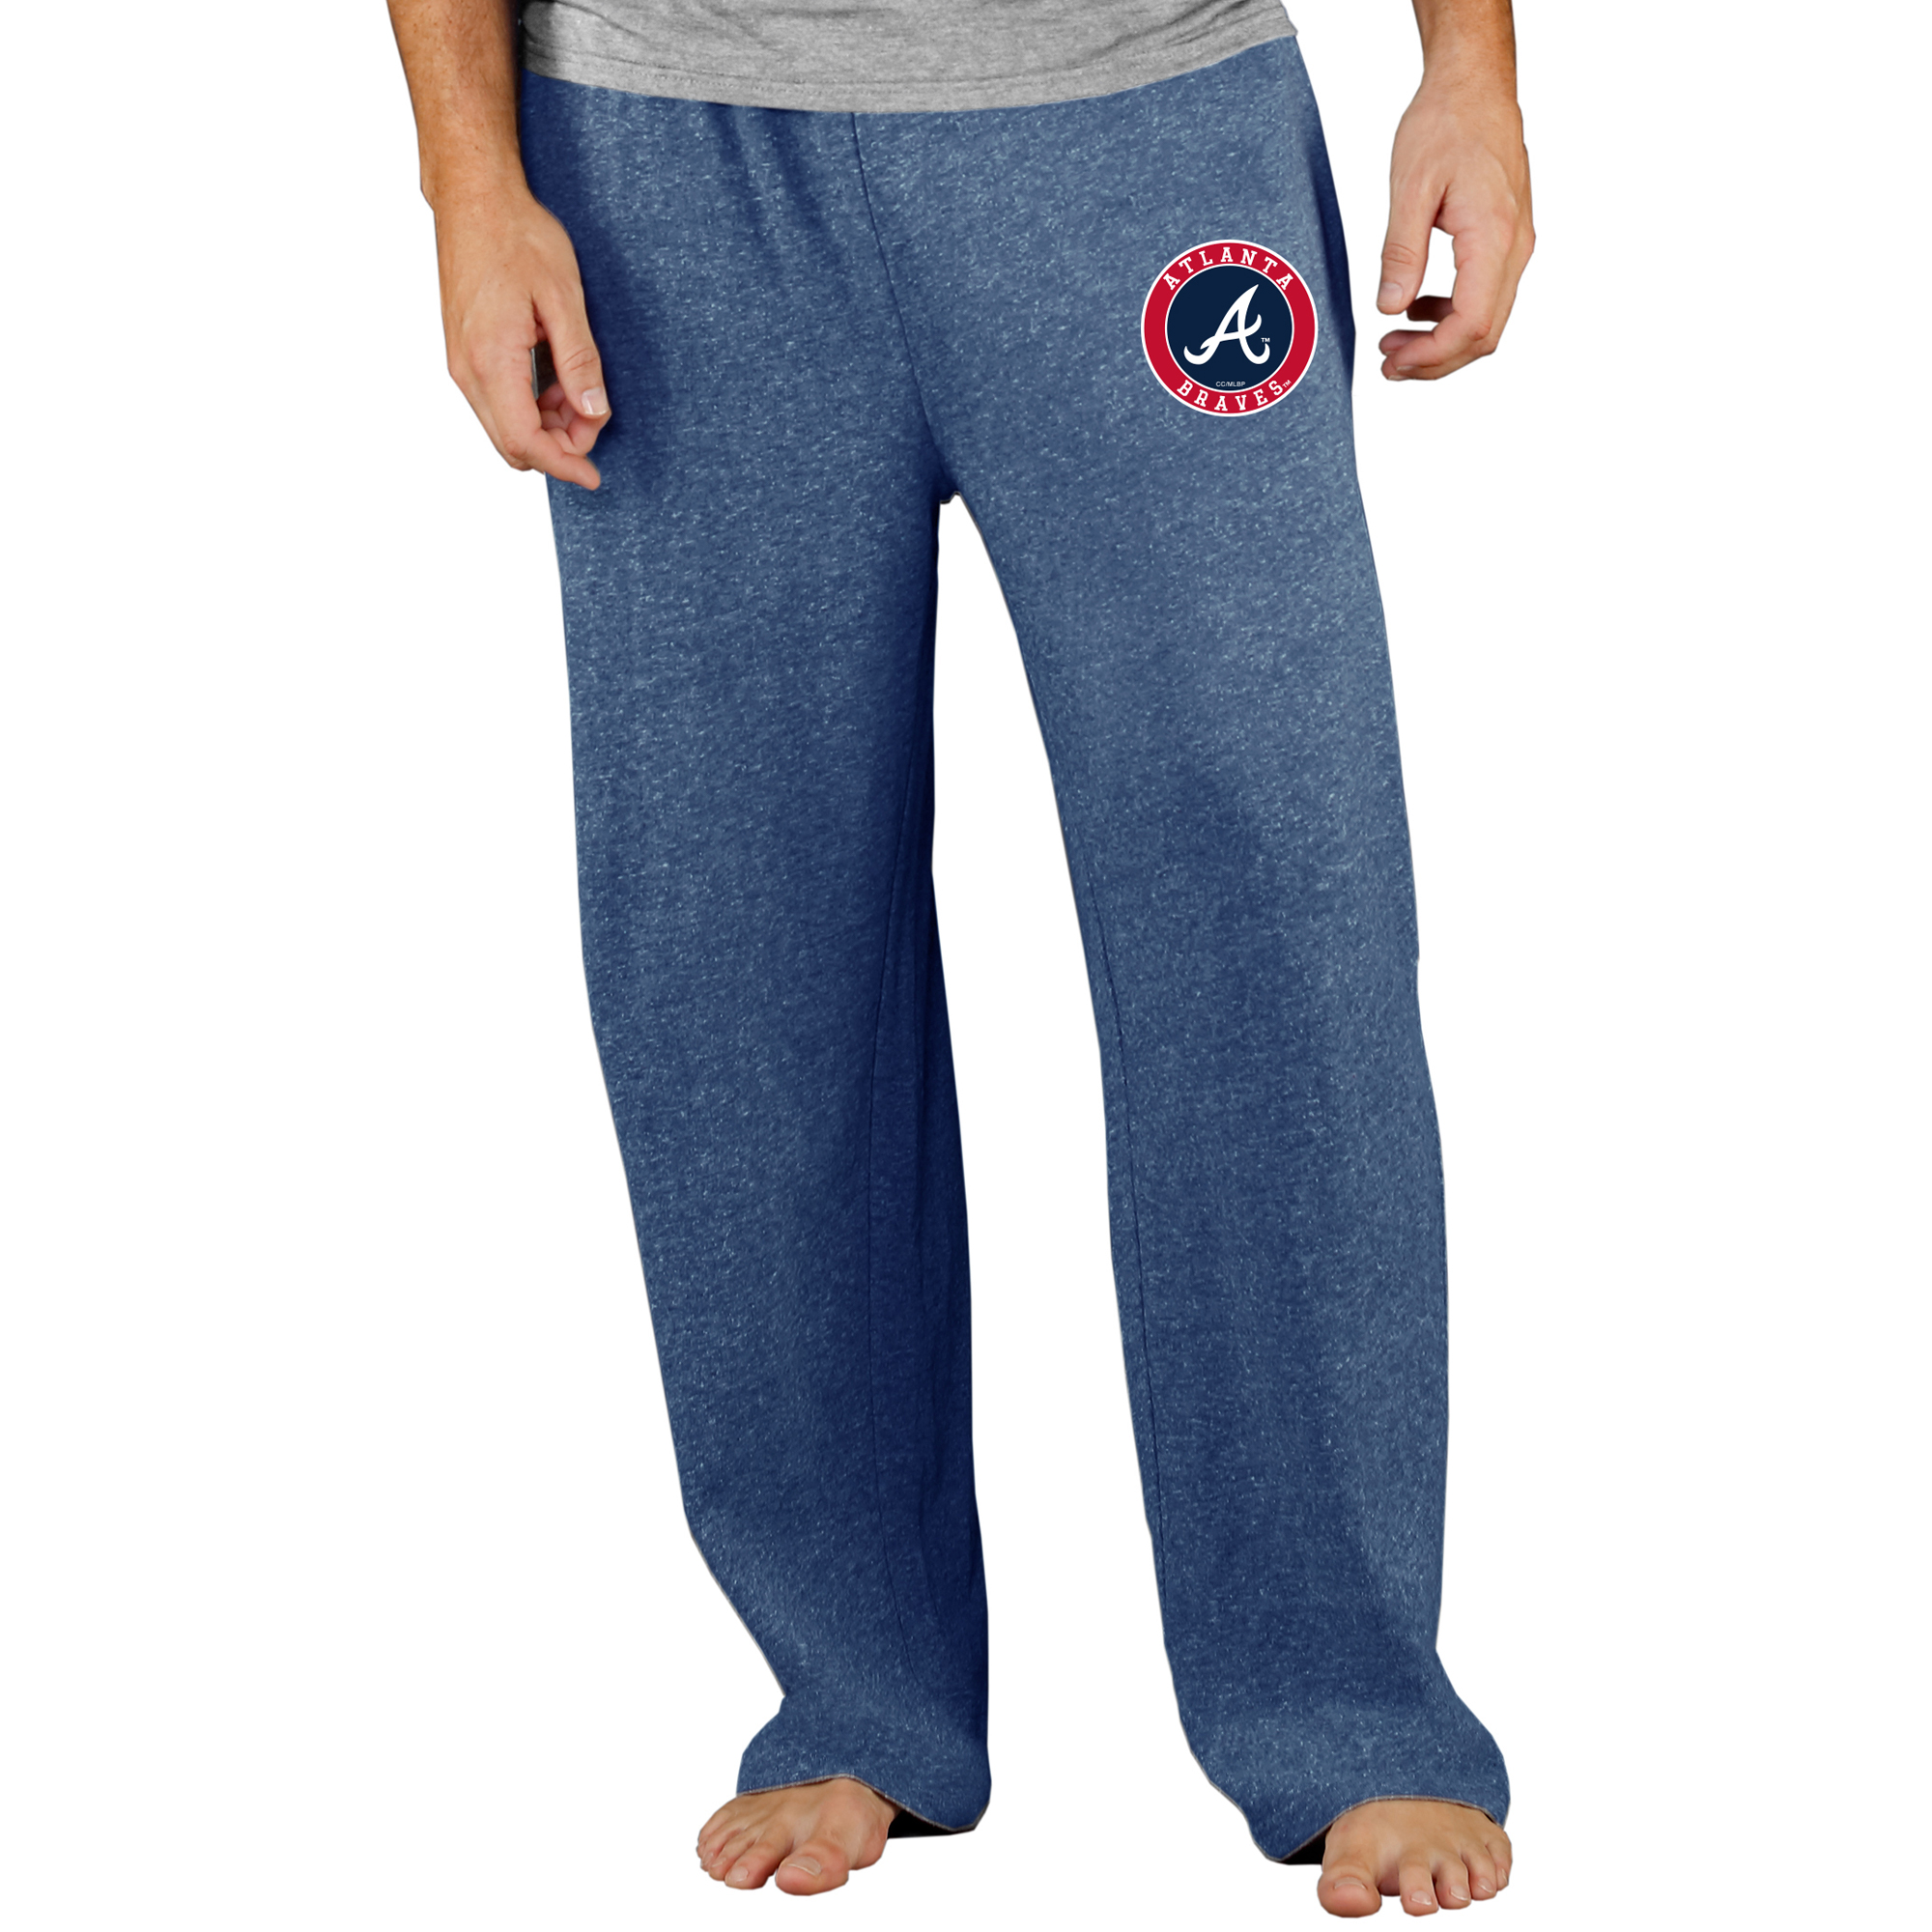 Atlanta Braves Concepts Sport Mainstream Terry Pants - Navy